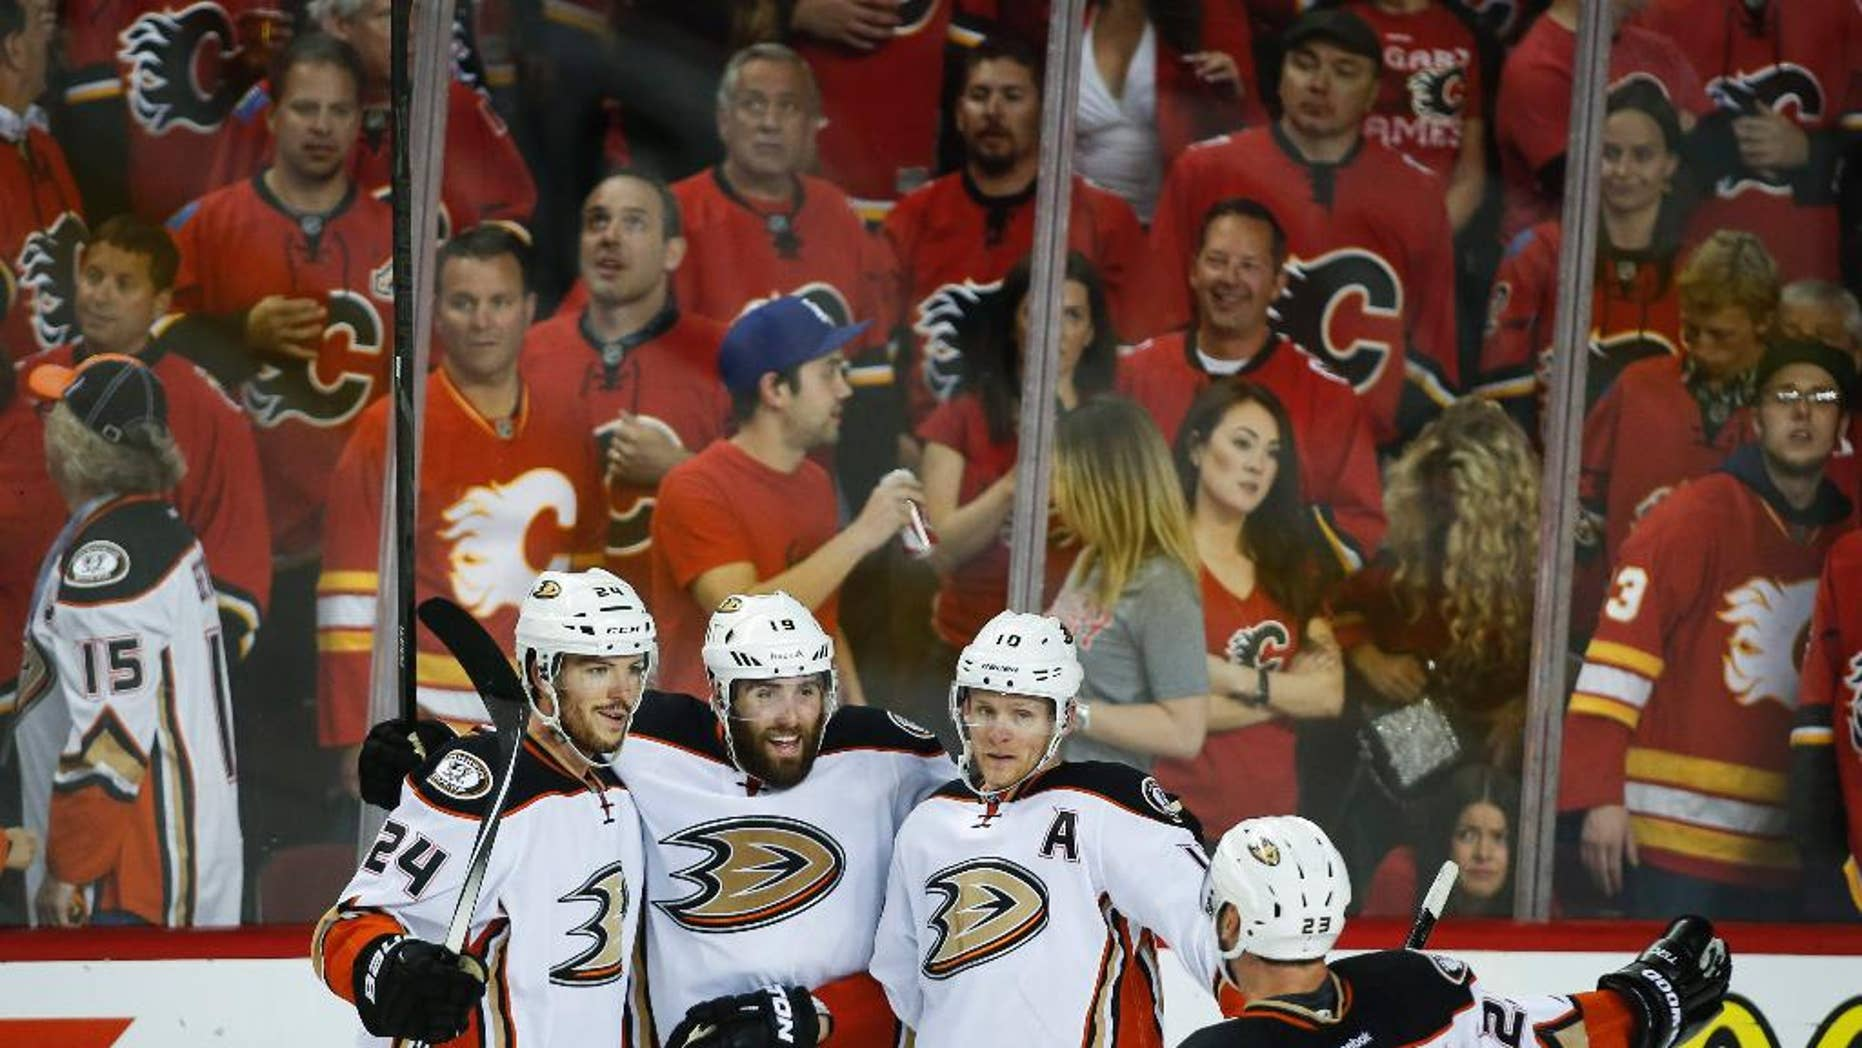 Anaheim Ducks' Simon Despres, from left, Patrick Maroon, Corey Perry and Francois Beauchemin celebrate their 4-2 win during the third period of Game 4 in an NHL hockey second-round playoff series against the Calgary Flames, Friday, May 8, 2015, in Calgary, Alberta. (Jeff McIntosh/The Canadian Press via AP) MANDATORY CREDIT